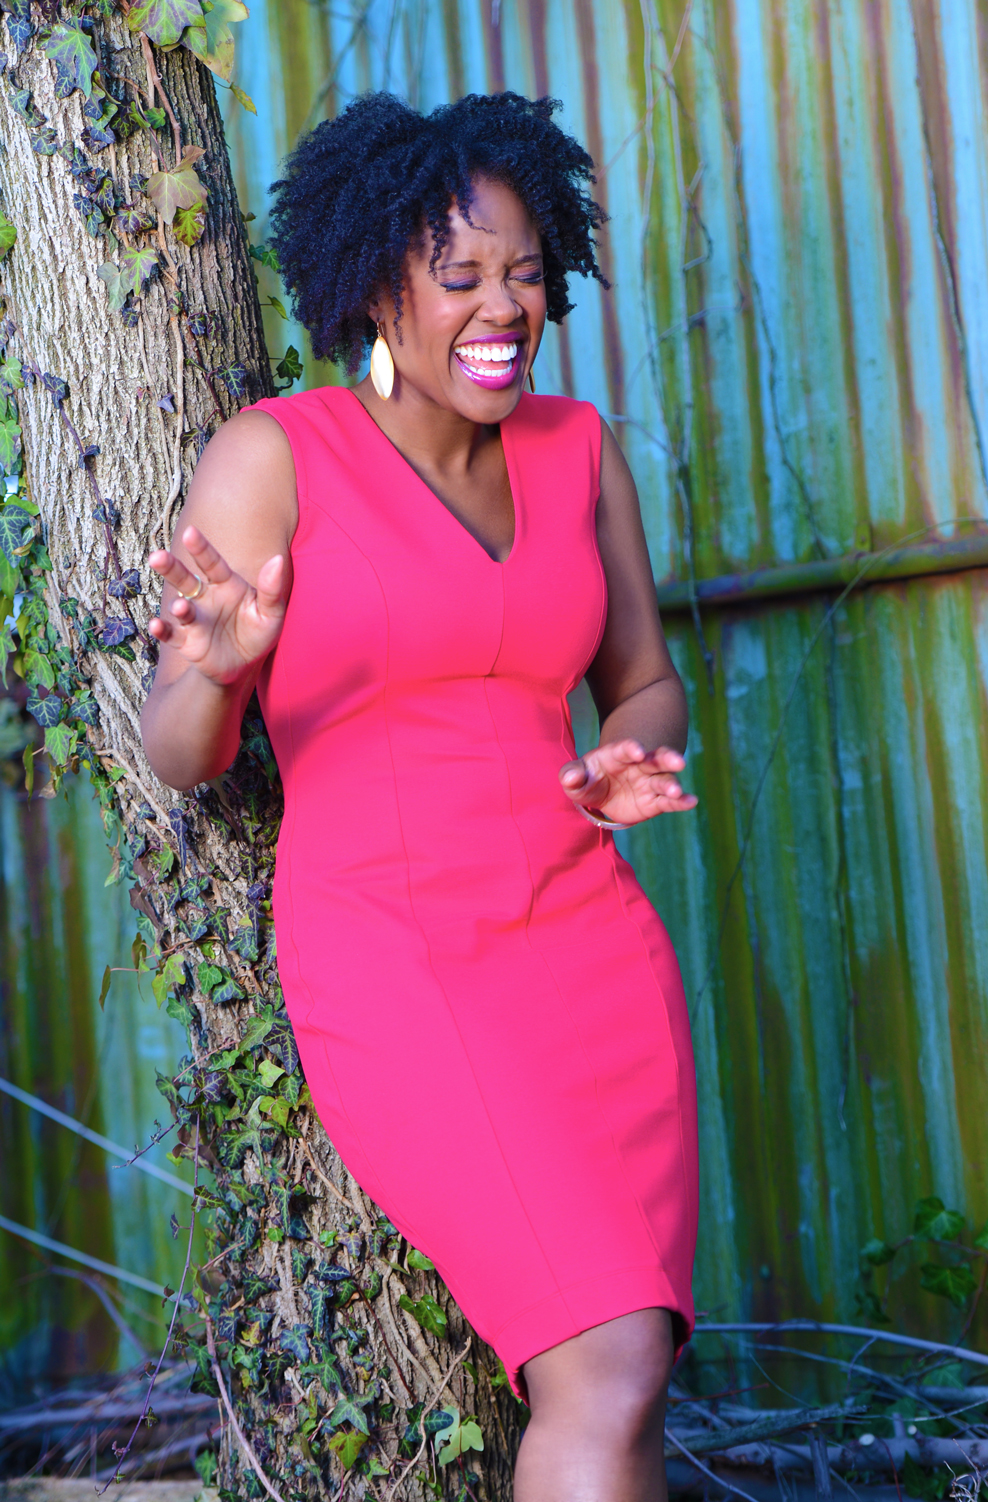 Akilah-Green-Comedy-Writer-Pink_dress-laughing.jpg